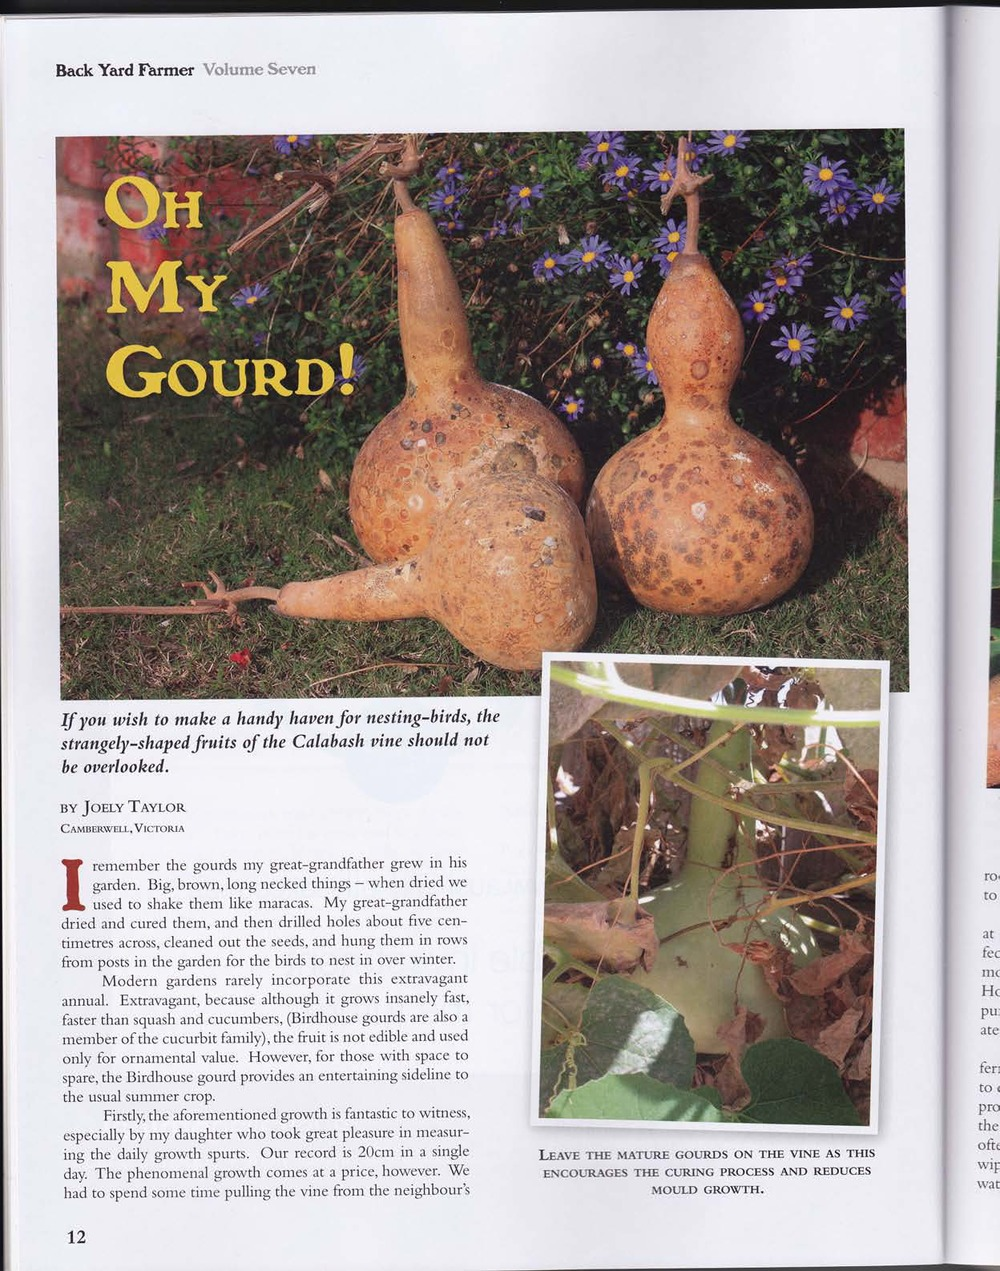 Split_OhMyGourd_BackYardFarmer_March2011_Low_Part1.jpg